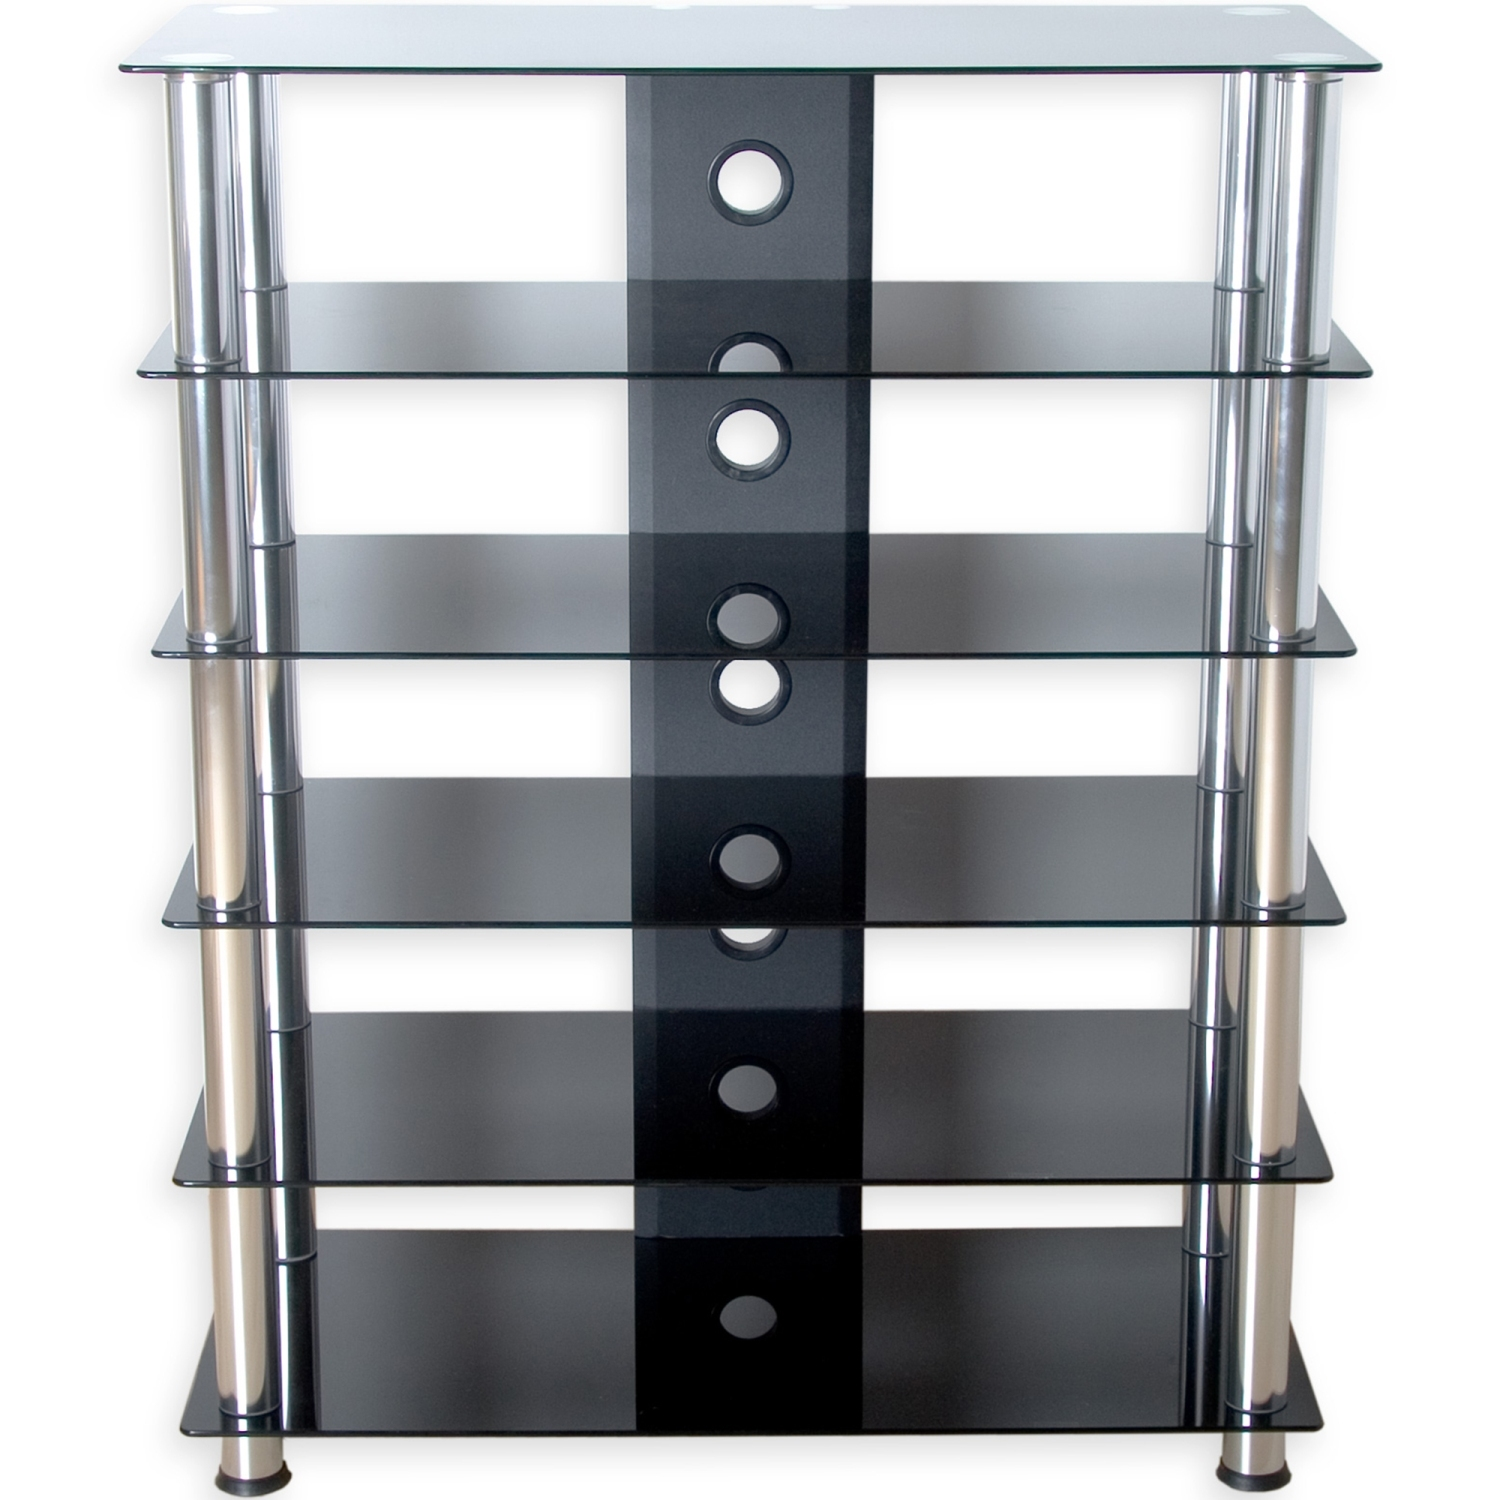 Glasregal Schwarzglas Stilista Tv Rack Schrank Ständer Möbel Regal Hifi Audio